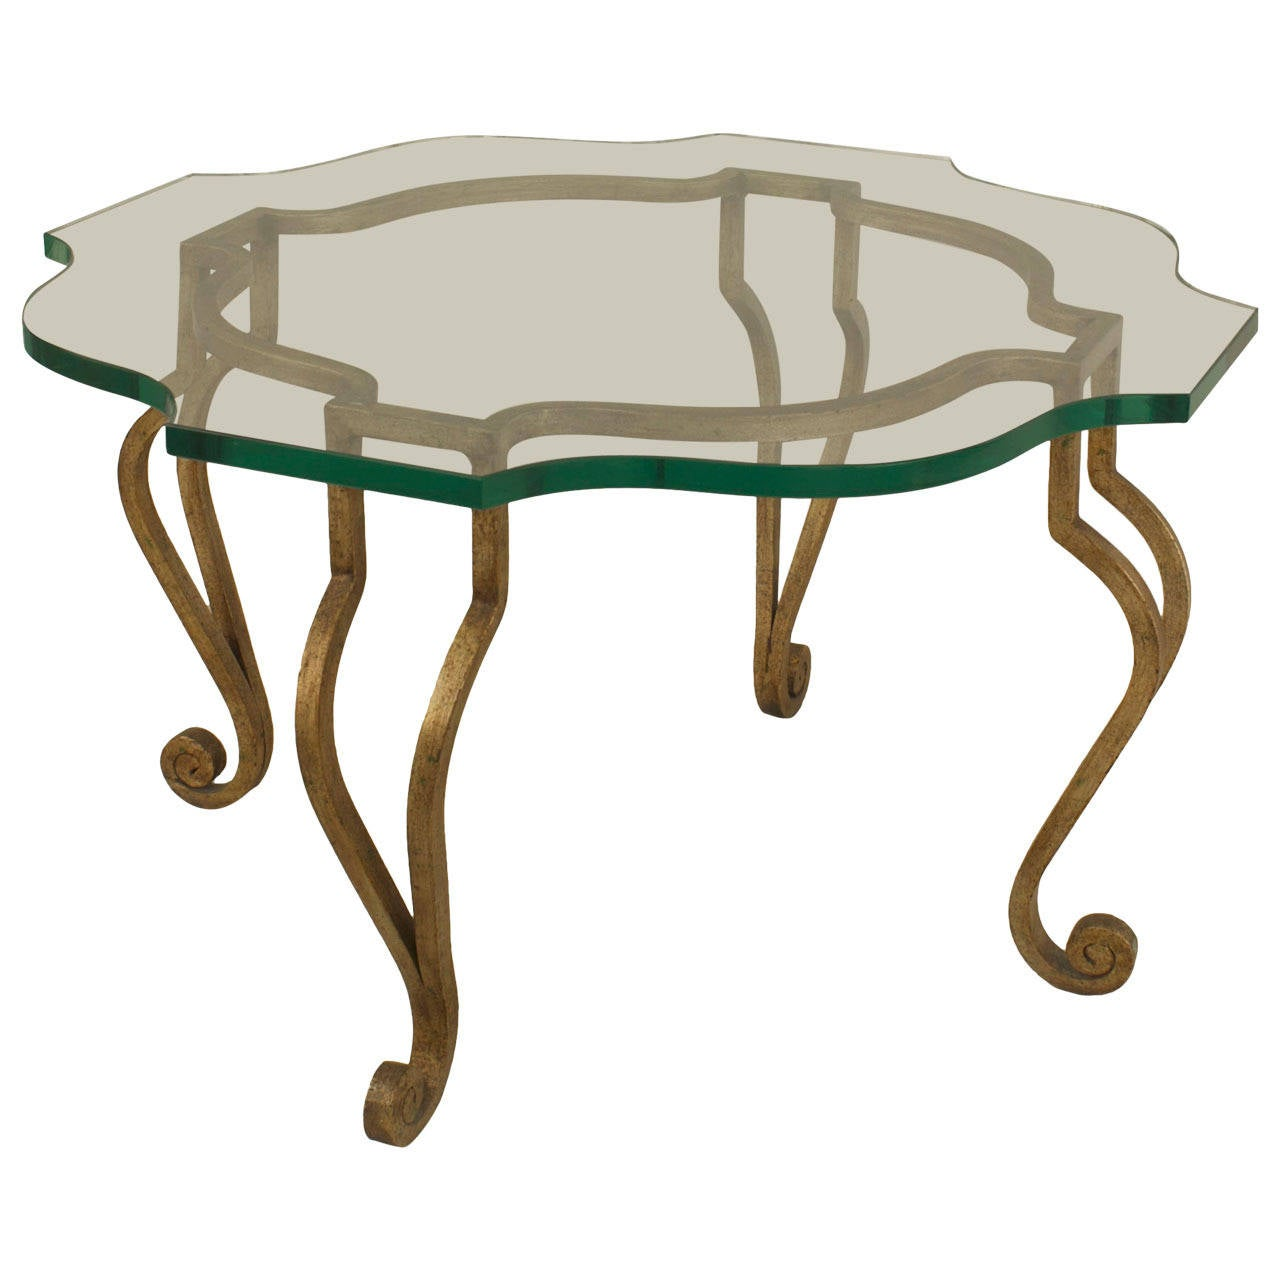 Mid 20th Century French Gilt Iron And Glass Coffee Table Attributed To Jansen For Sale At 1stdibs